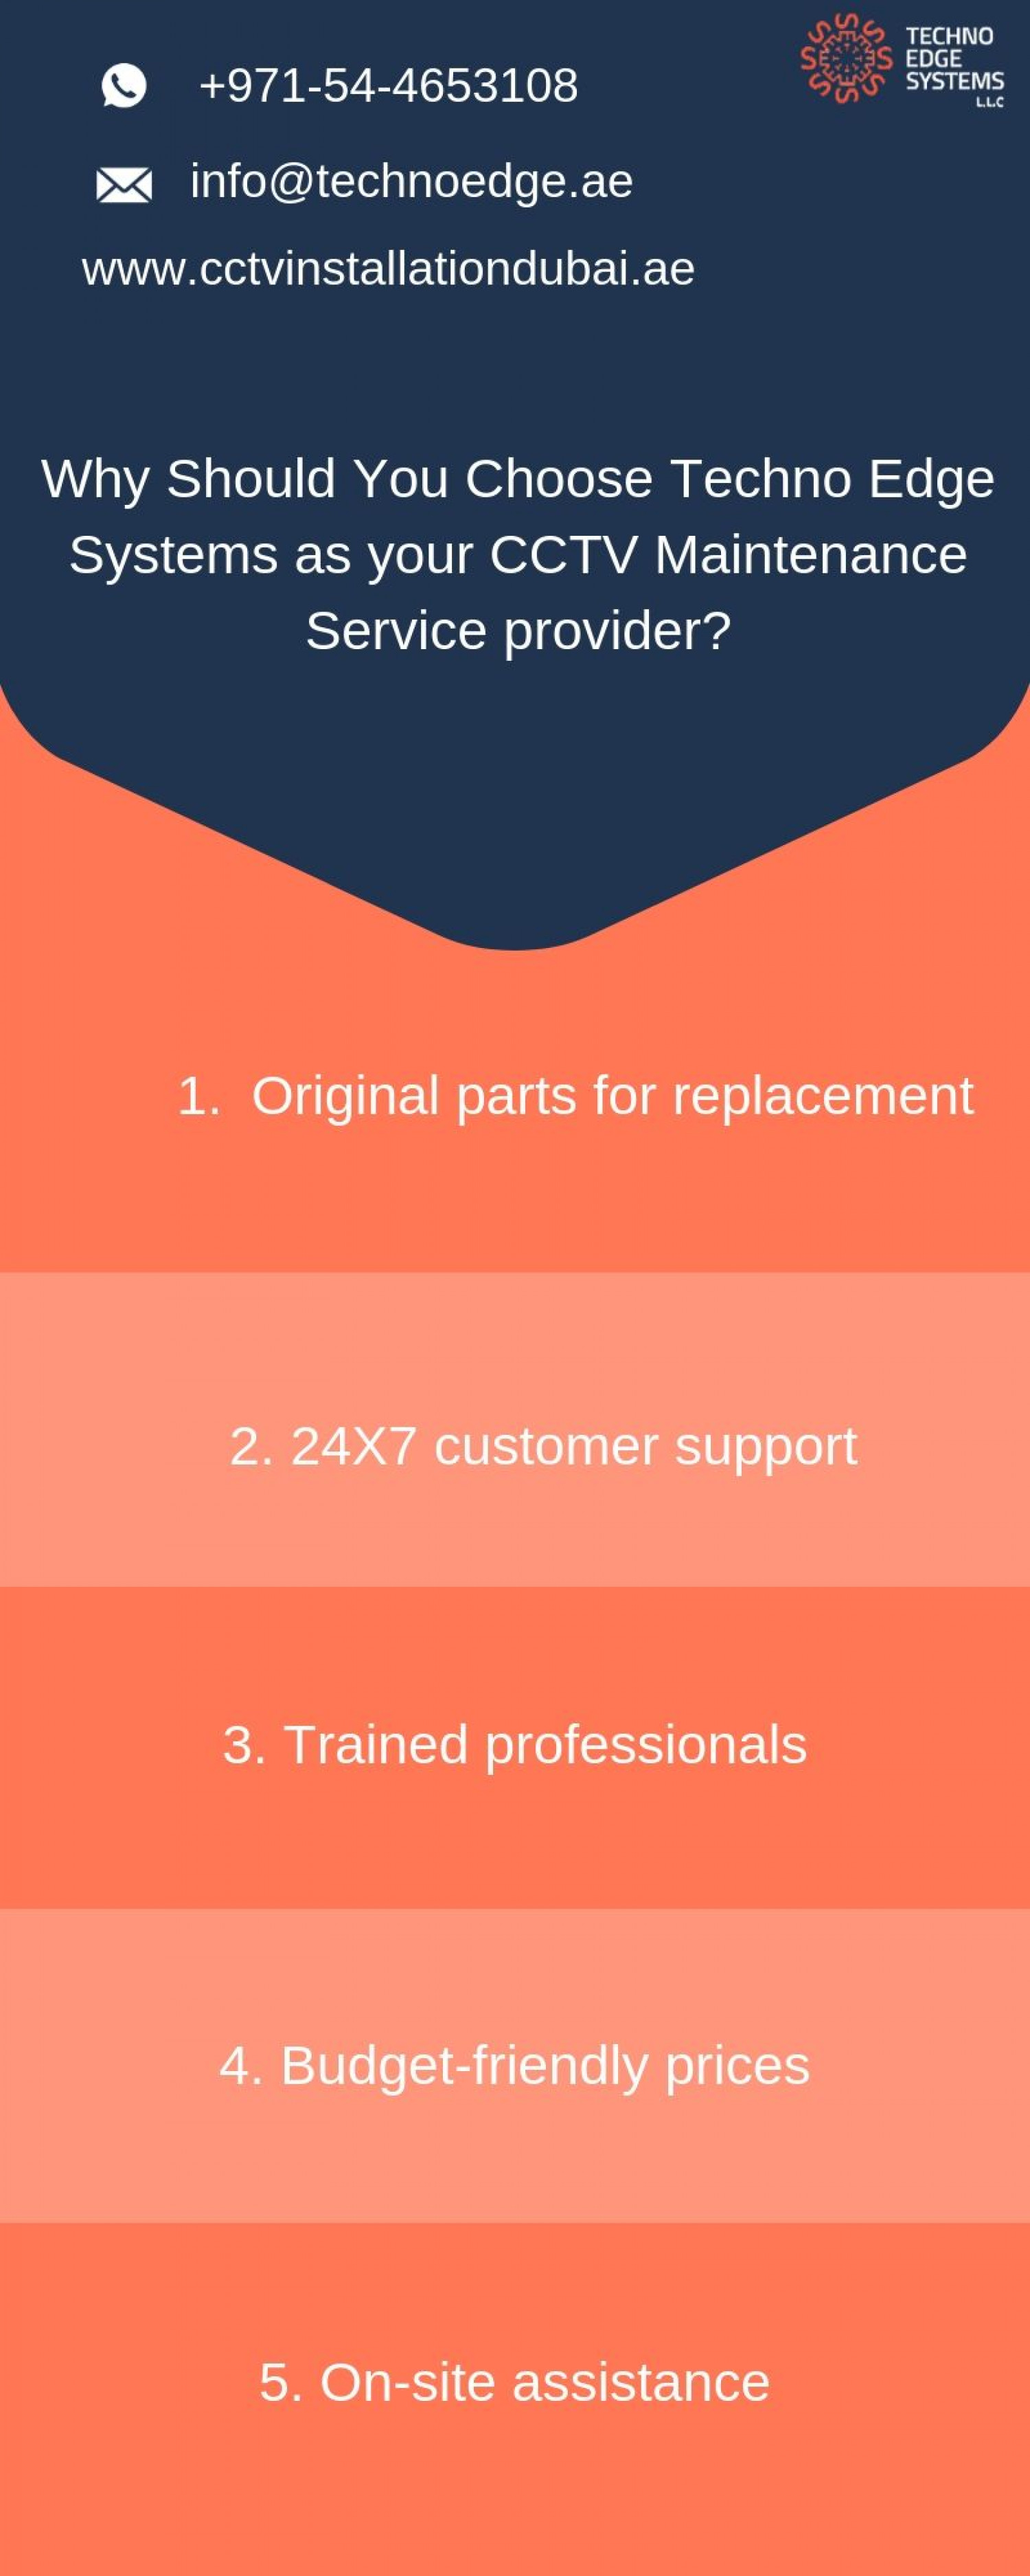 Why Should You Choose Techno Edge Systems as your CCTV Maintenance Service provider? Infographic